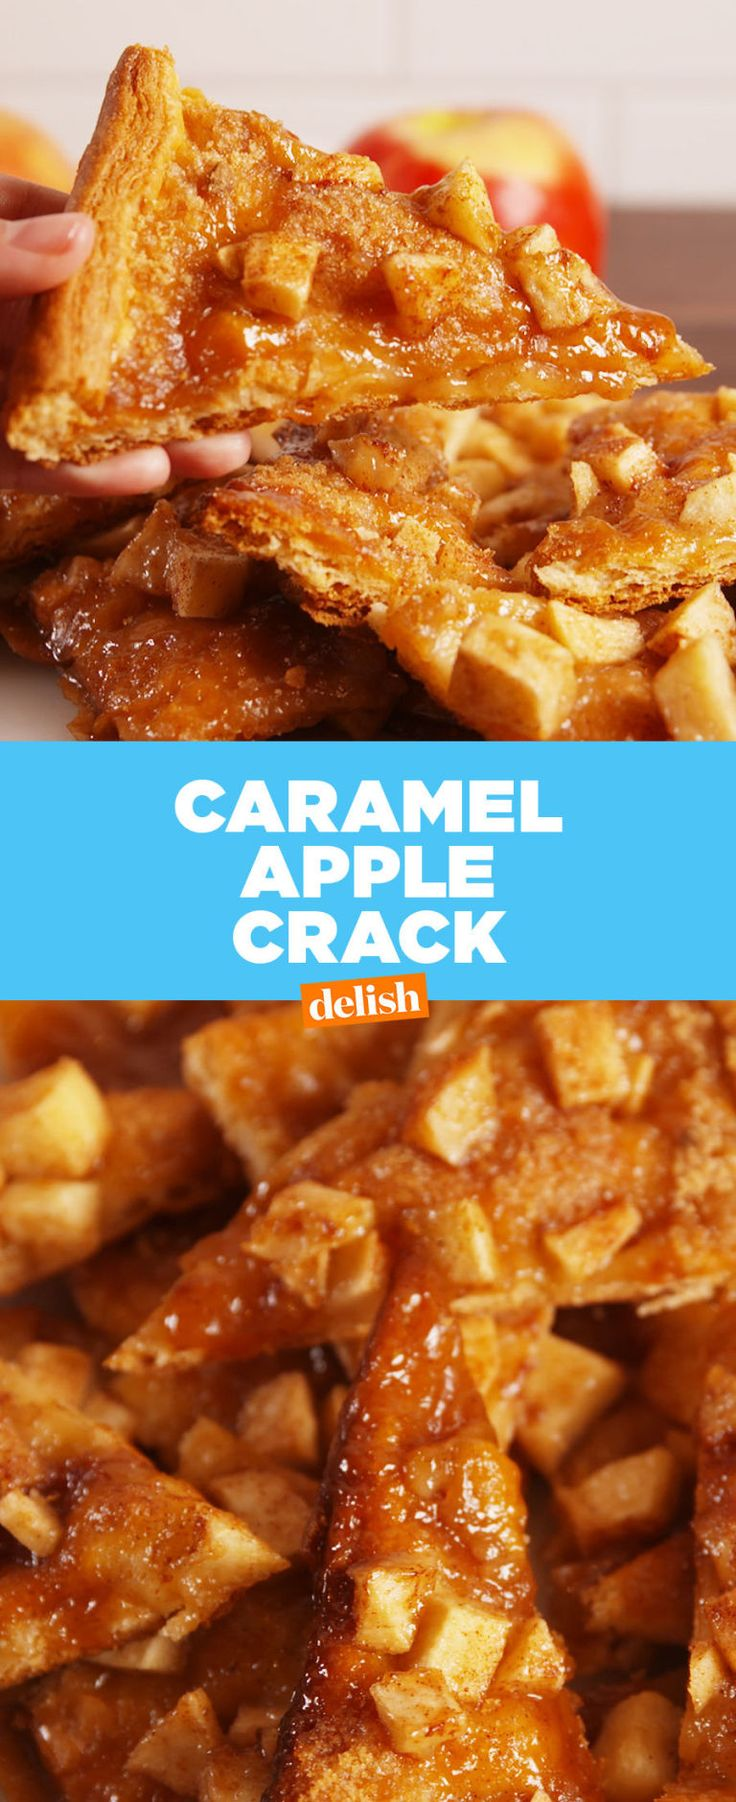 Caramel Apple Crack  - Delish.com